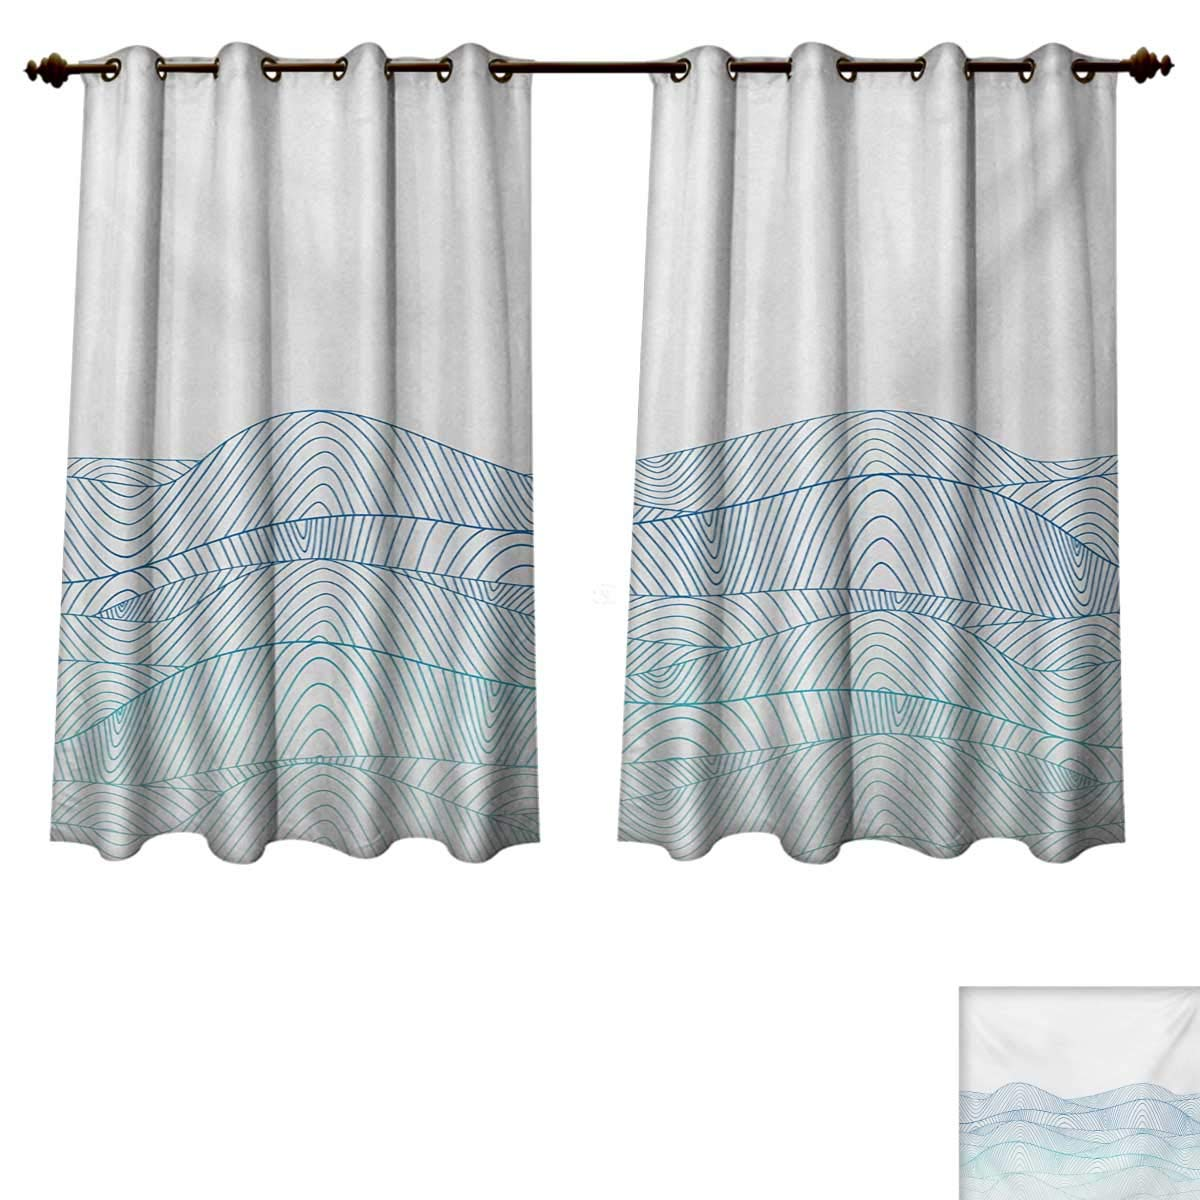 Amazoncom Rupperttextile Blue And White Blackout Curtains Panels